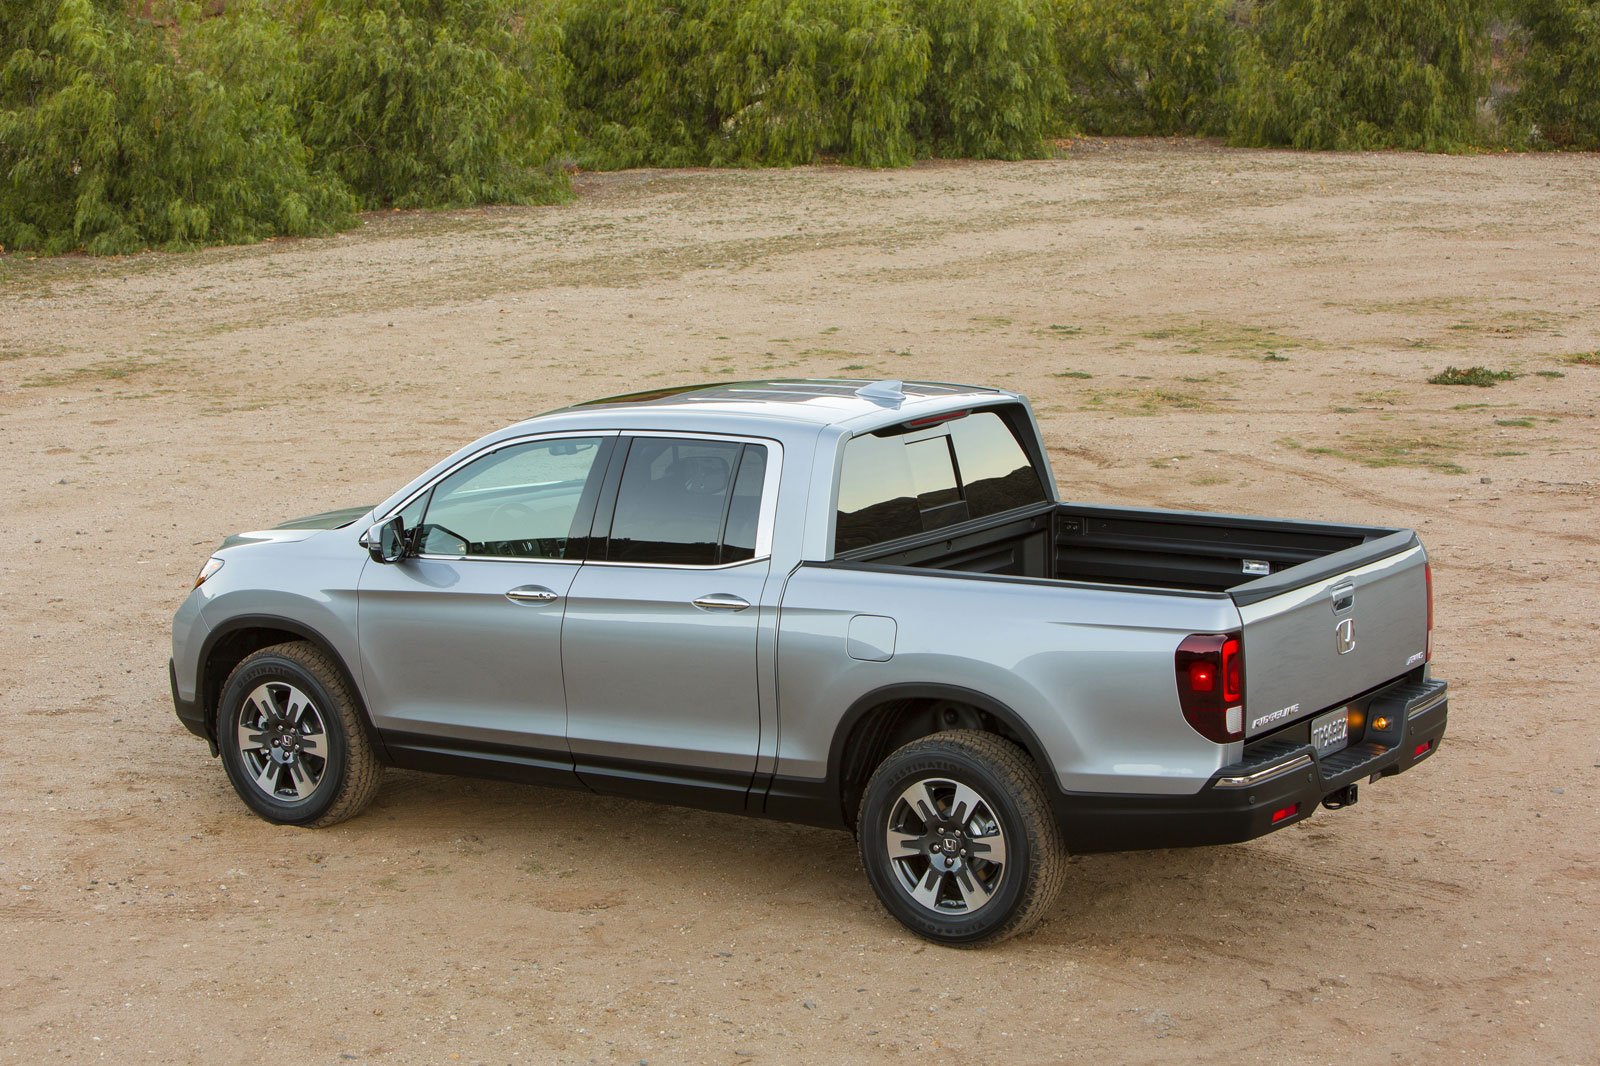 edition ridgeline review abounds wheels car black ca nice interior honda reviews in touches